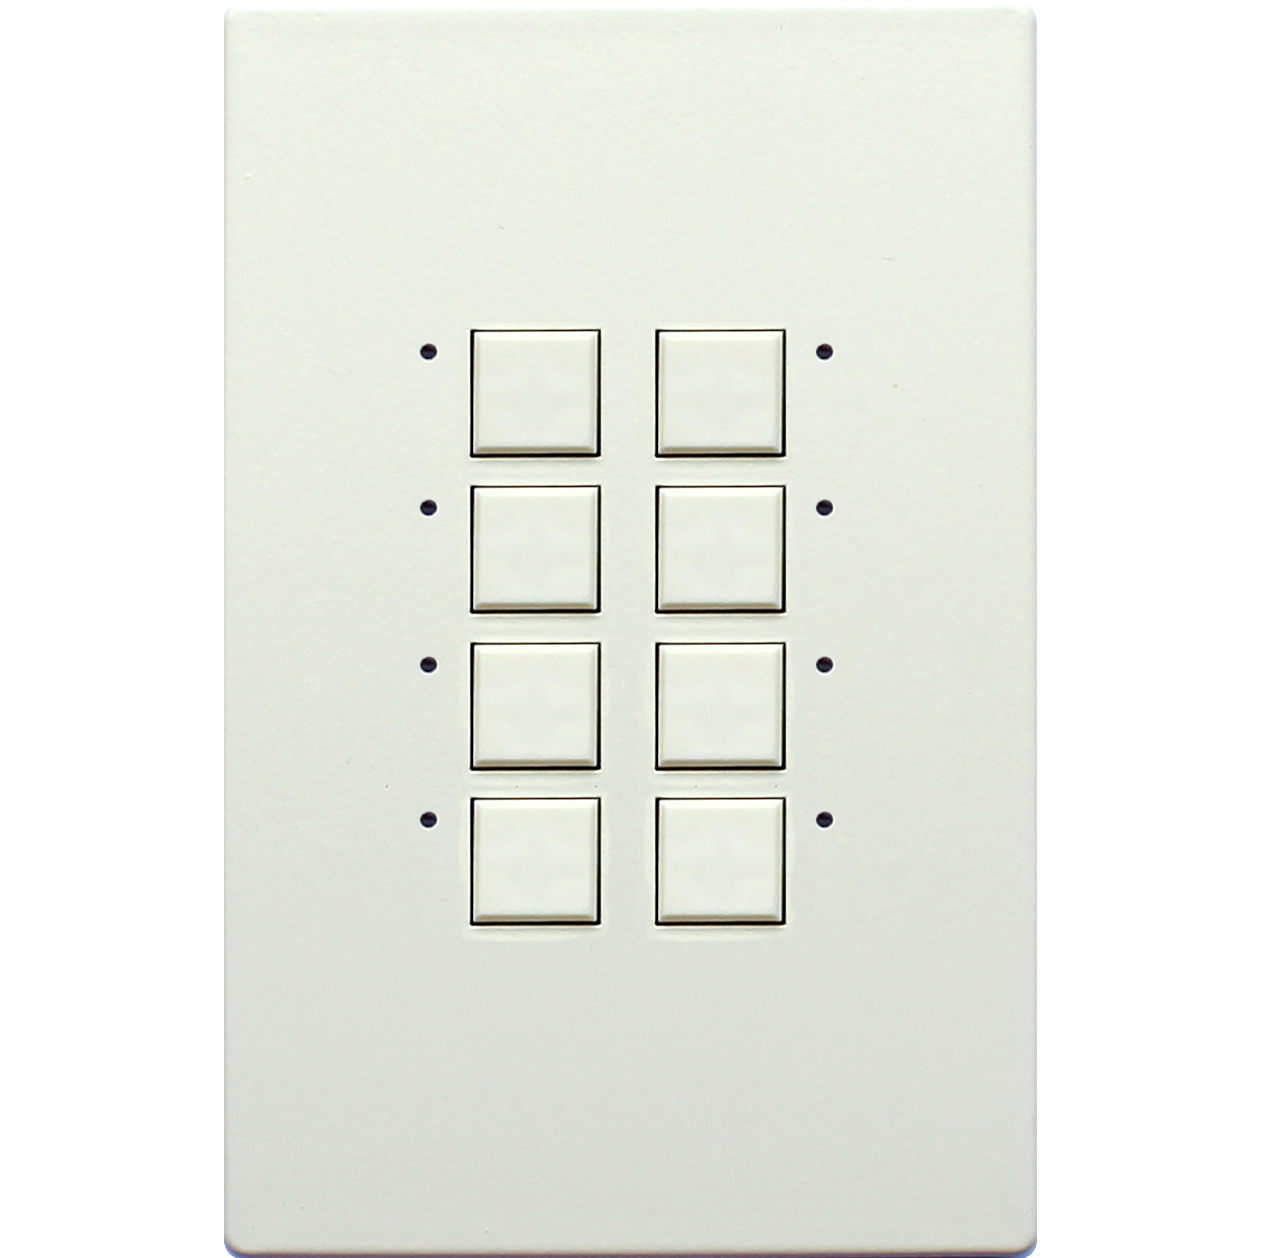 Mystique Series Wall Switch - Touch-Plate Lighting Controls Touch ...